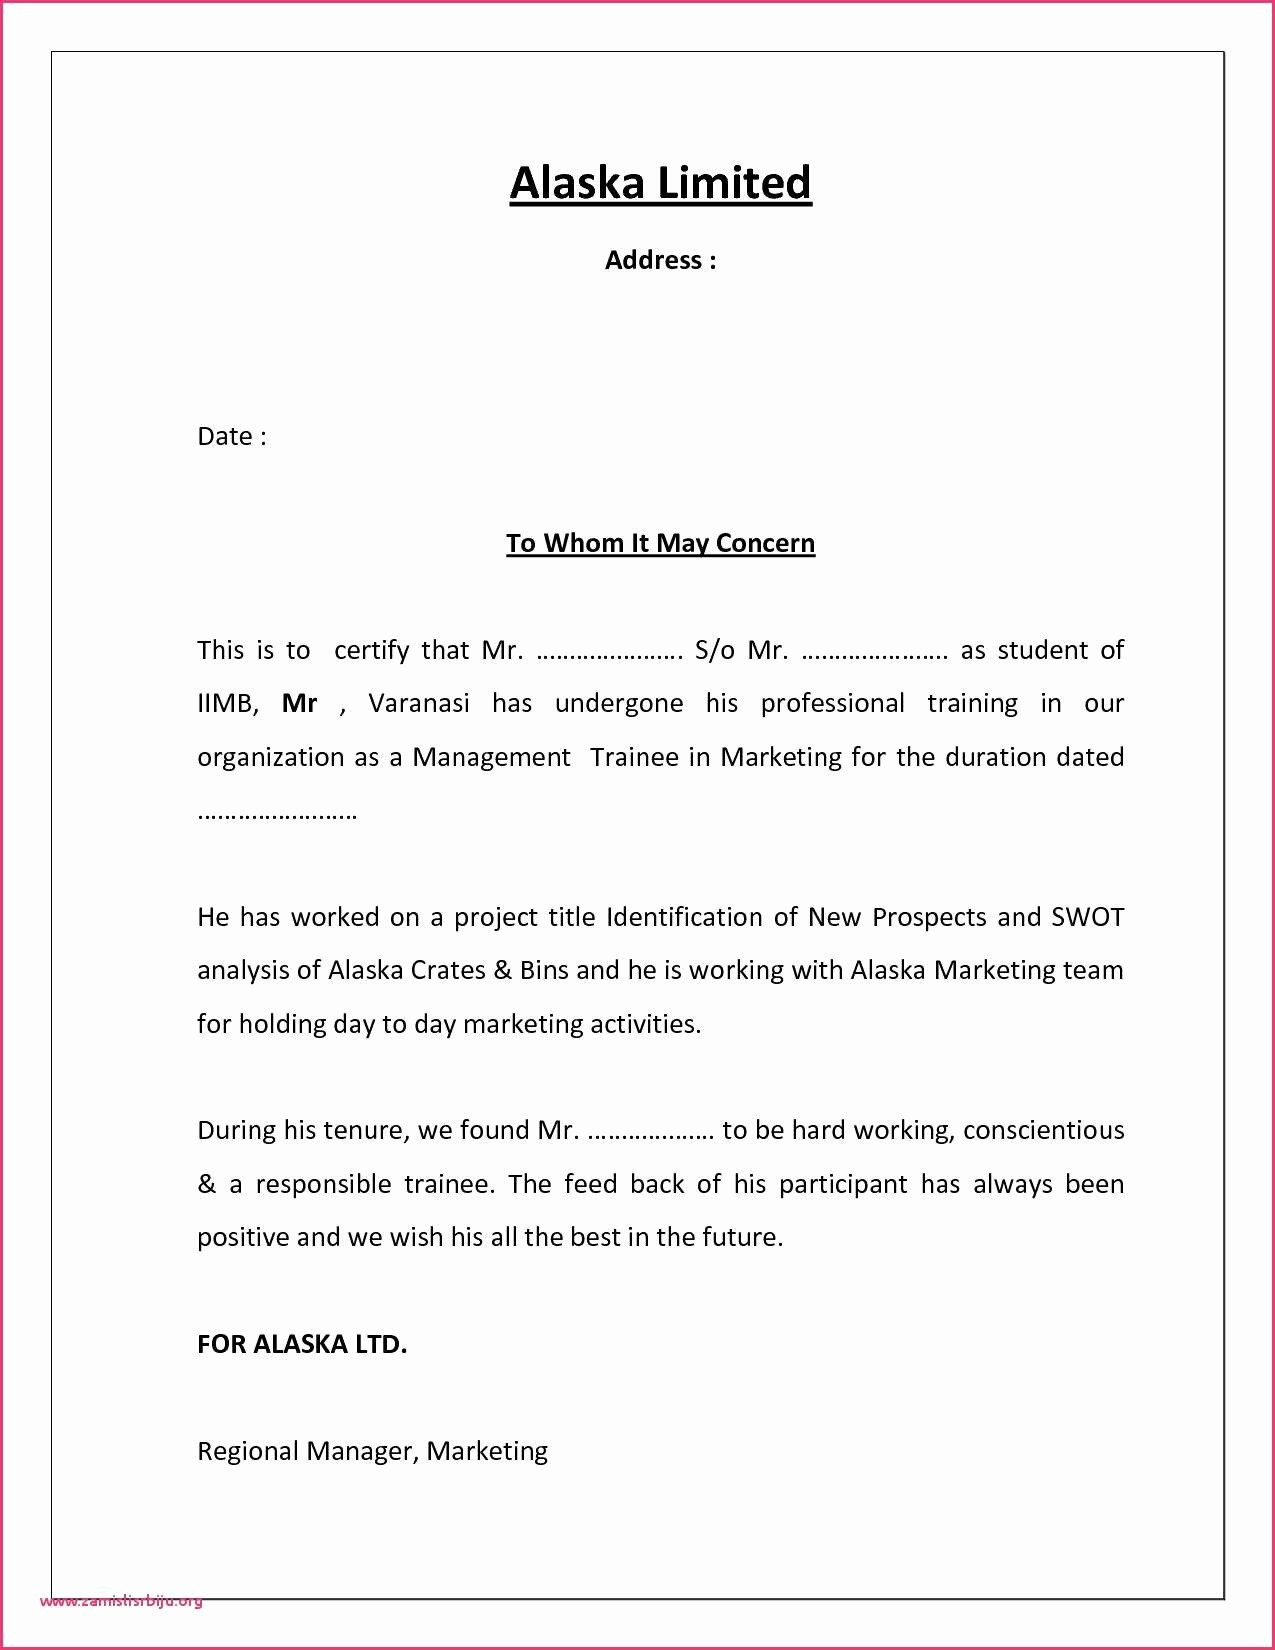 Attendance Certificate format for Employees Luxury Sample Course attendance Certificate Work Pletion